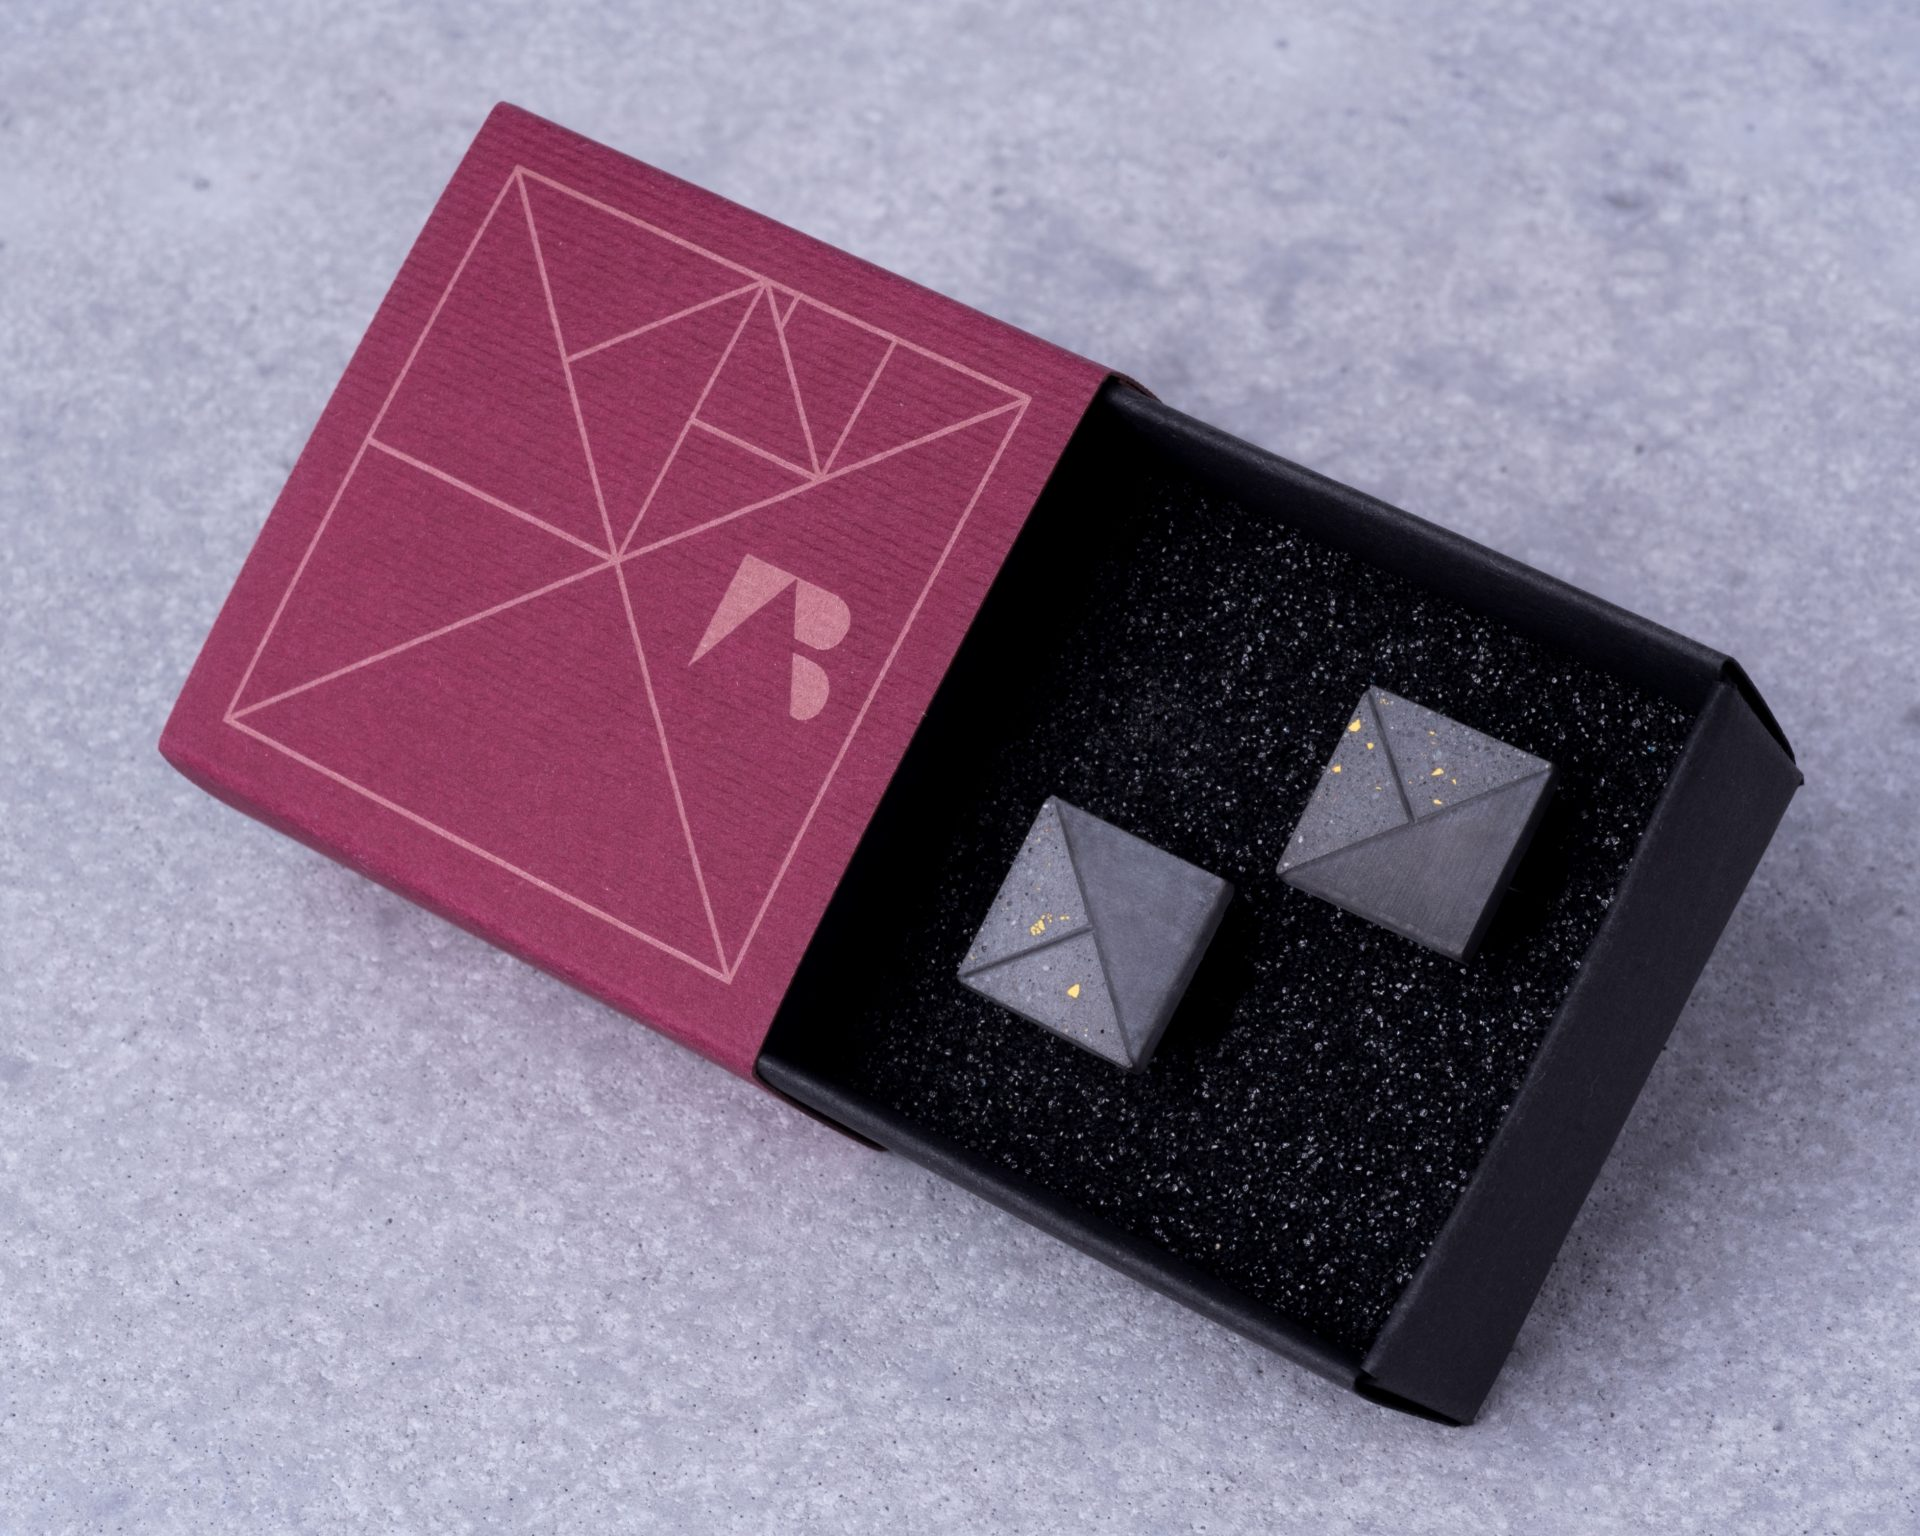 Designer terrazzo cufflinks with unique packaging perfect gift idea for business men